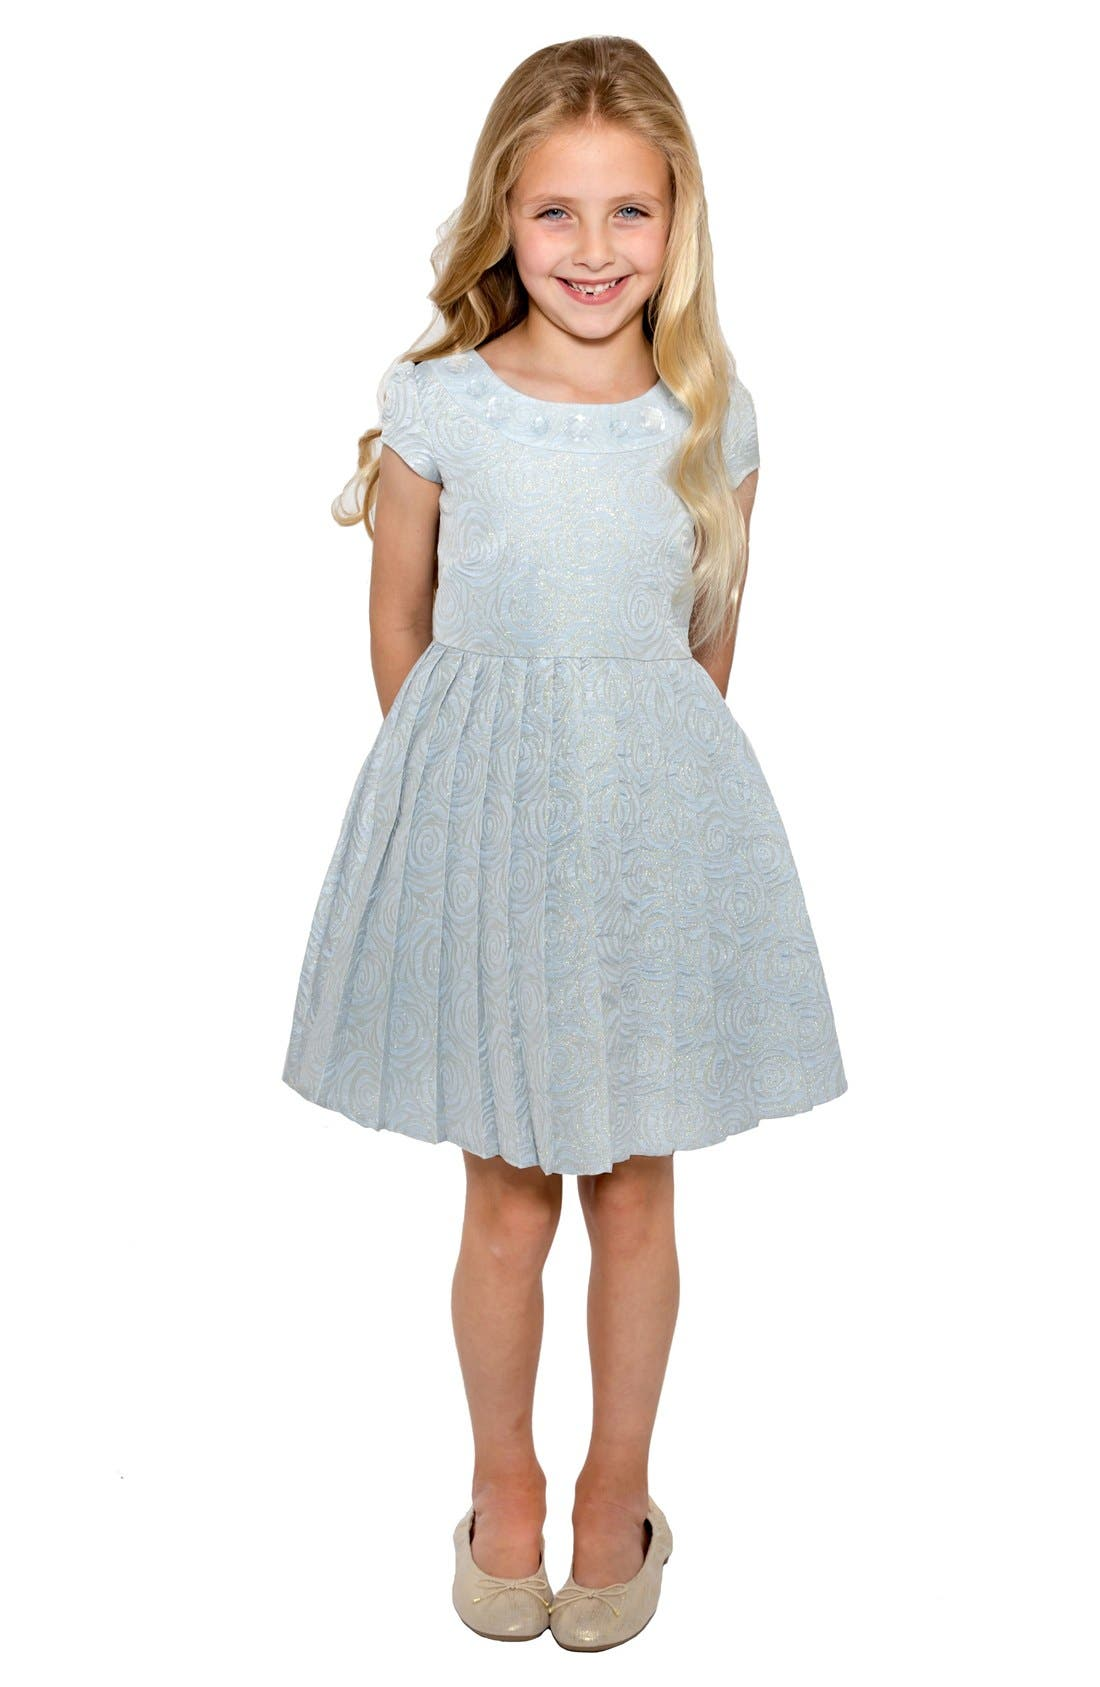 Girls' Special Occasions: Clothing, Accessories & Shoes | Nordstrom